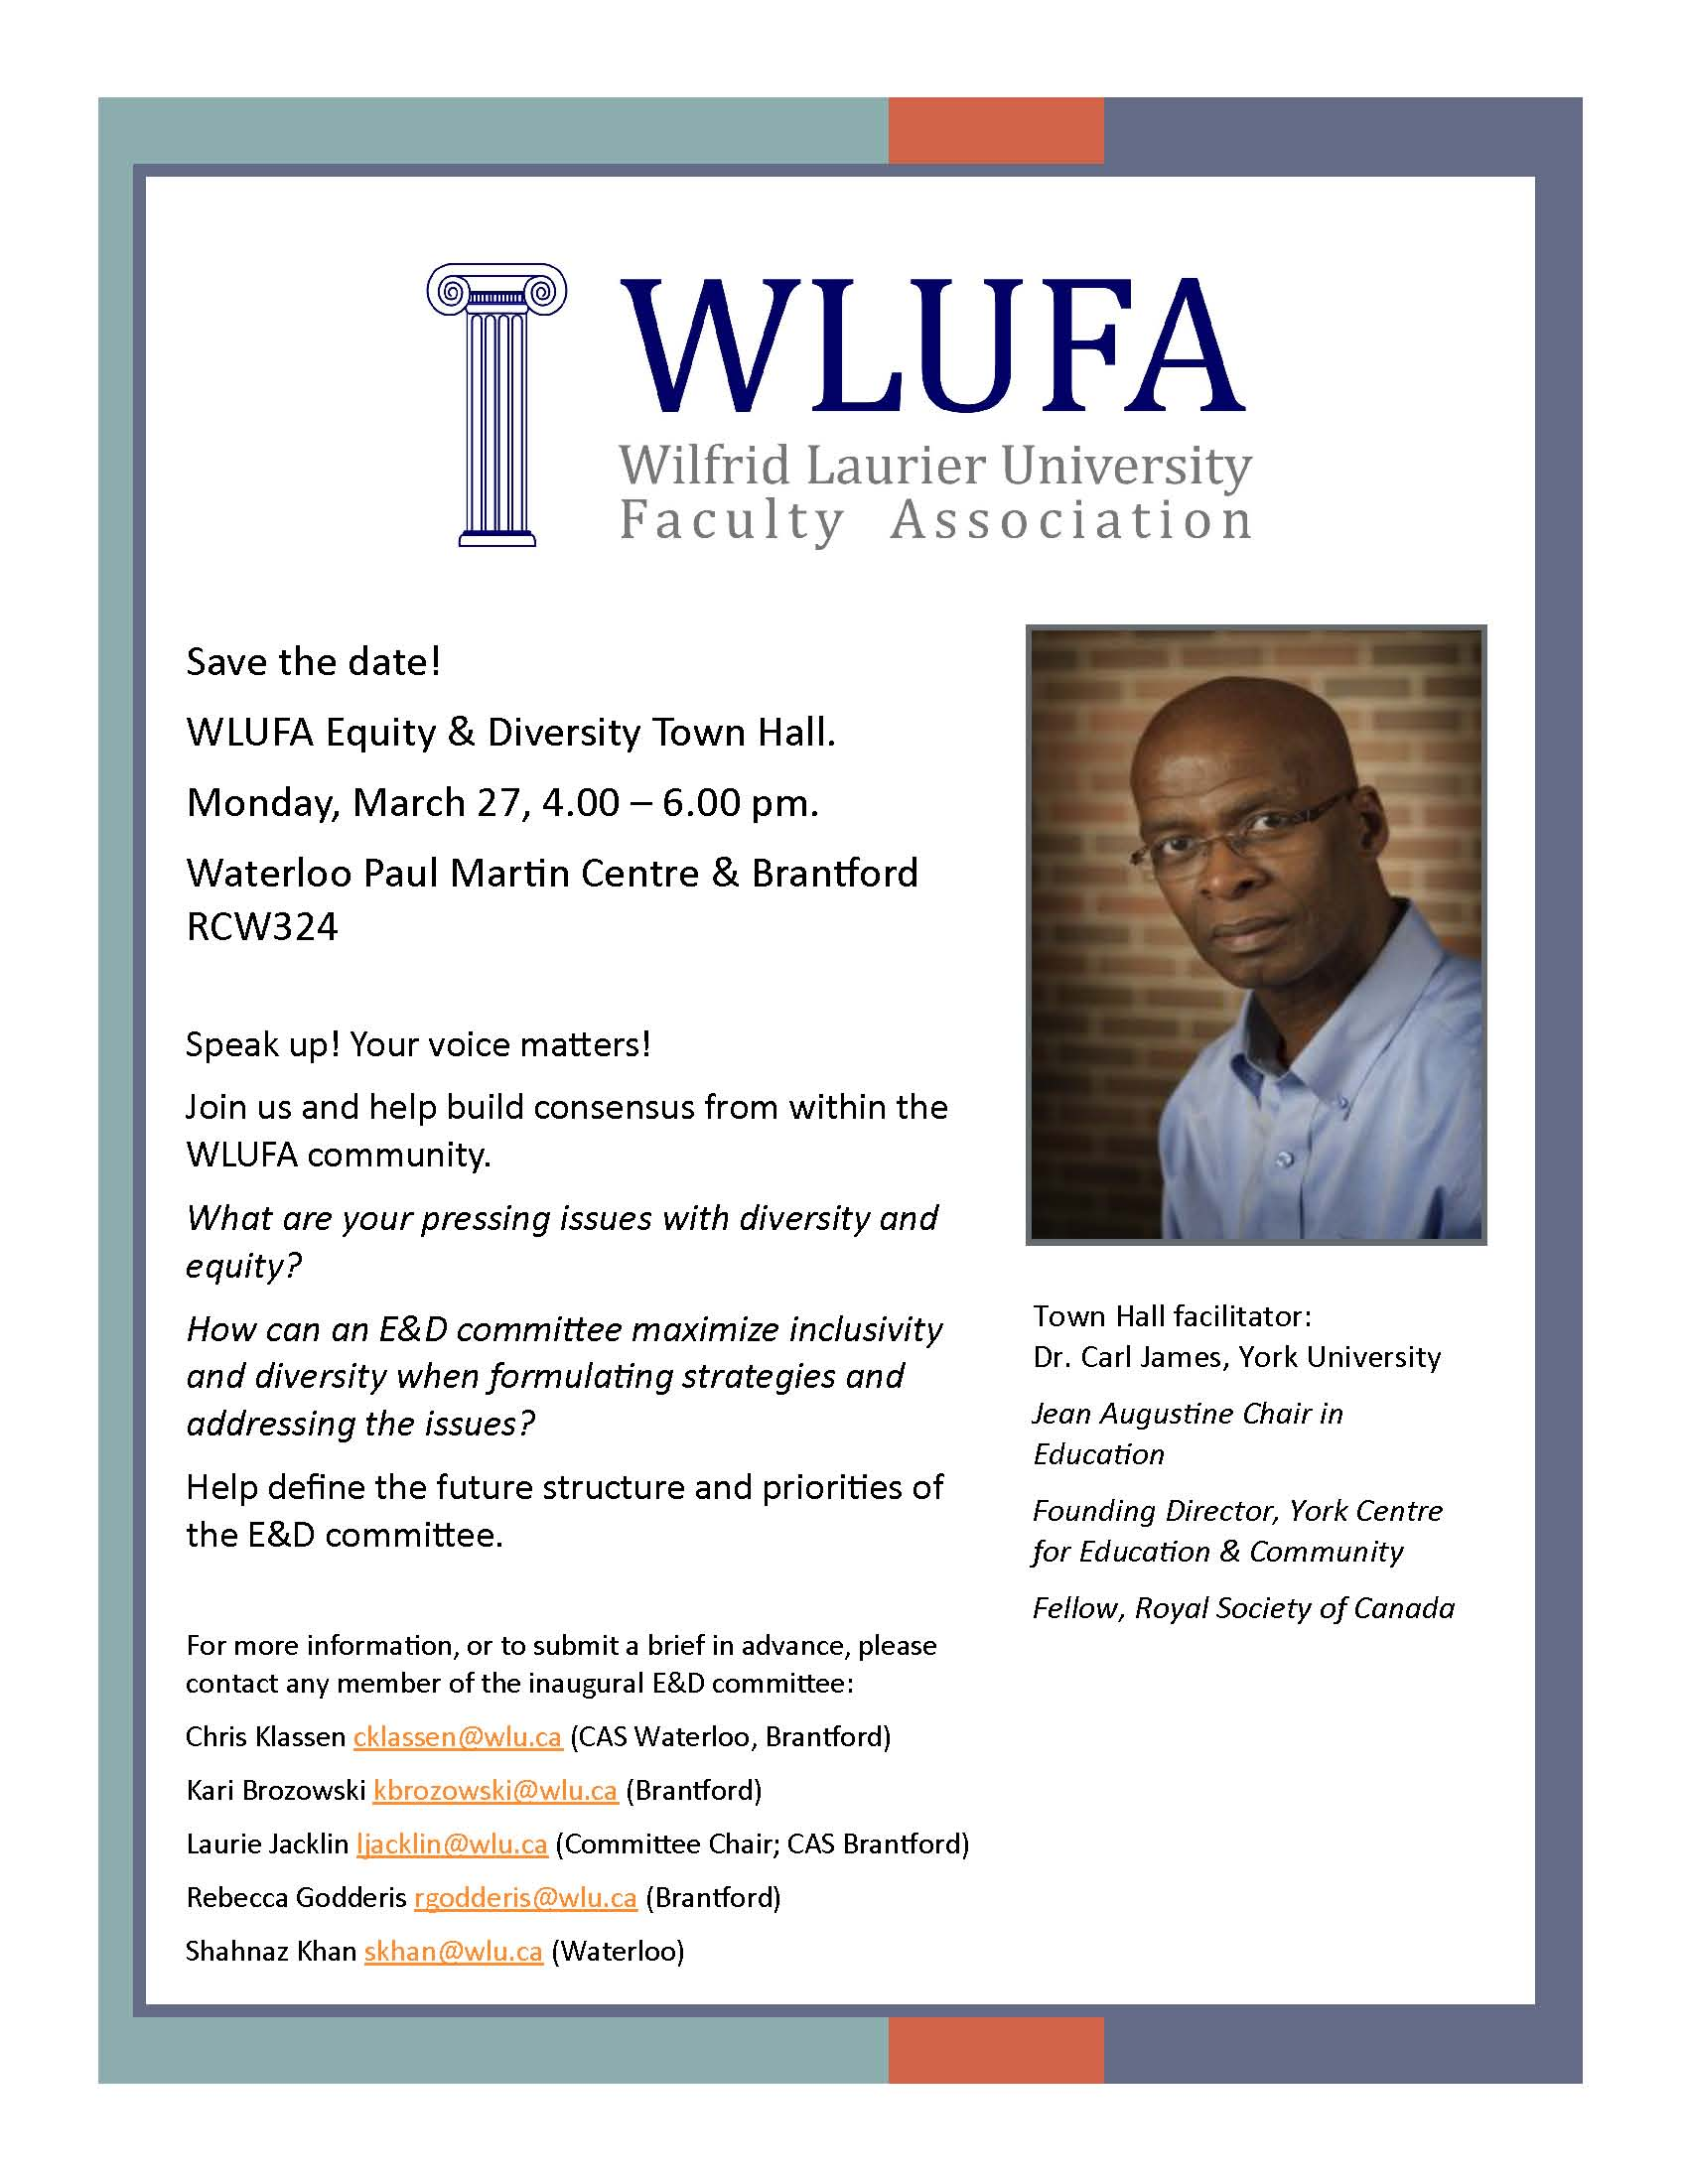 WLUFA Equity and Diversity Town Hall